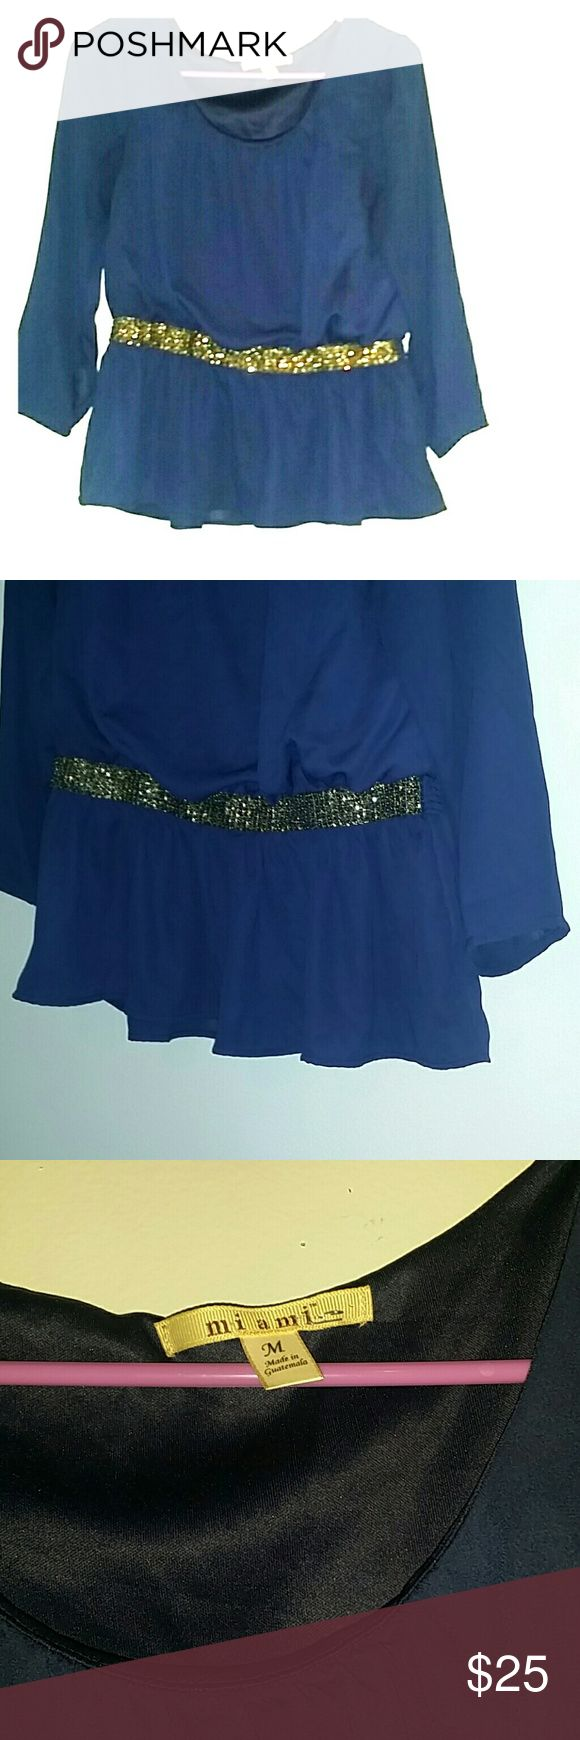 """Francesca's Miami Brand Navy Blue and Gold Blouse Miami brand from Francesca's  navy crepe chiffon tunic.  Size medium.  this is a lovely, lovely top.  Tunic with sequined waistband creating a bit of a blouson with a gathered bottom.   The upper part is lined in navy soft knit. Back waist is smocked elastic.  Bust 41"""" (meant to blouse) Length 23"""" Francesca's Collections Tops Blouses"""